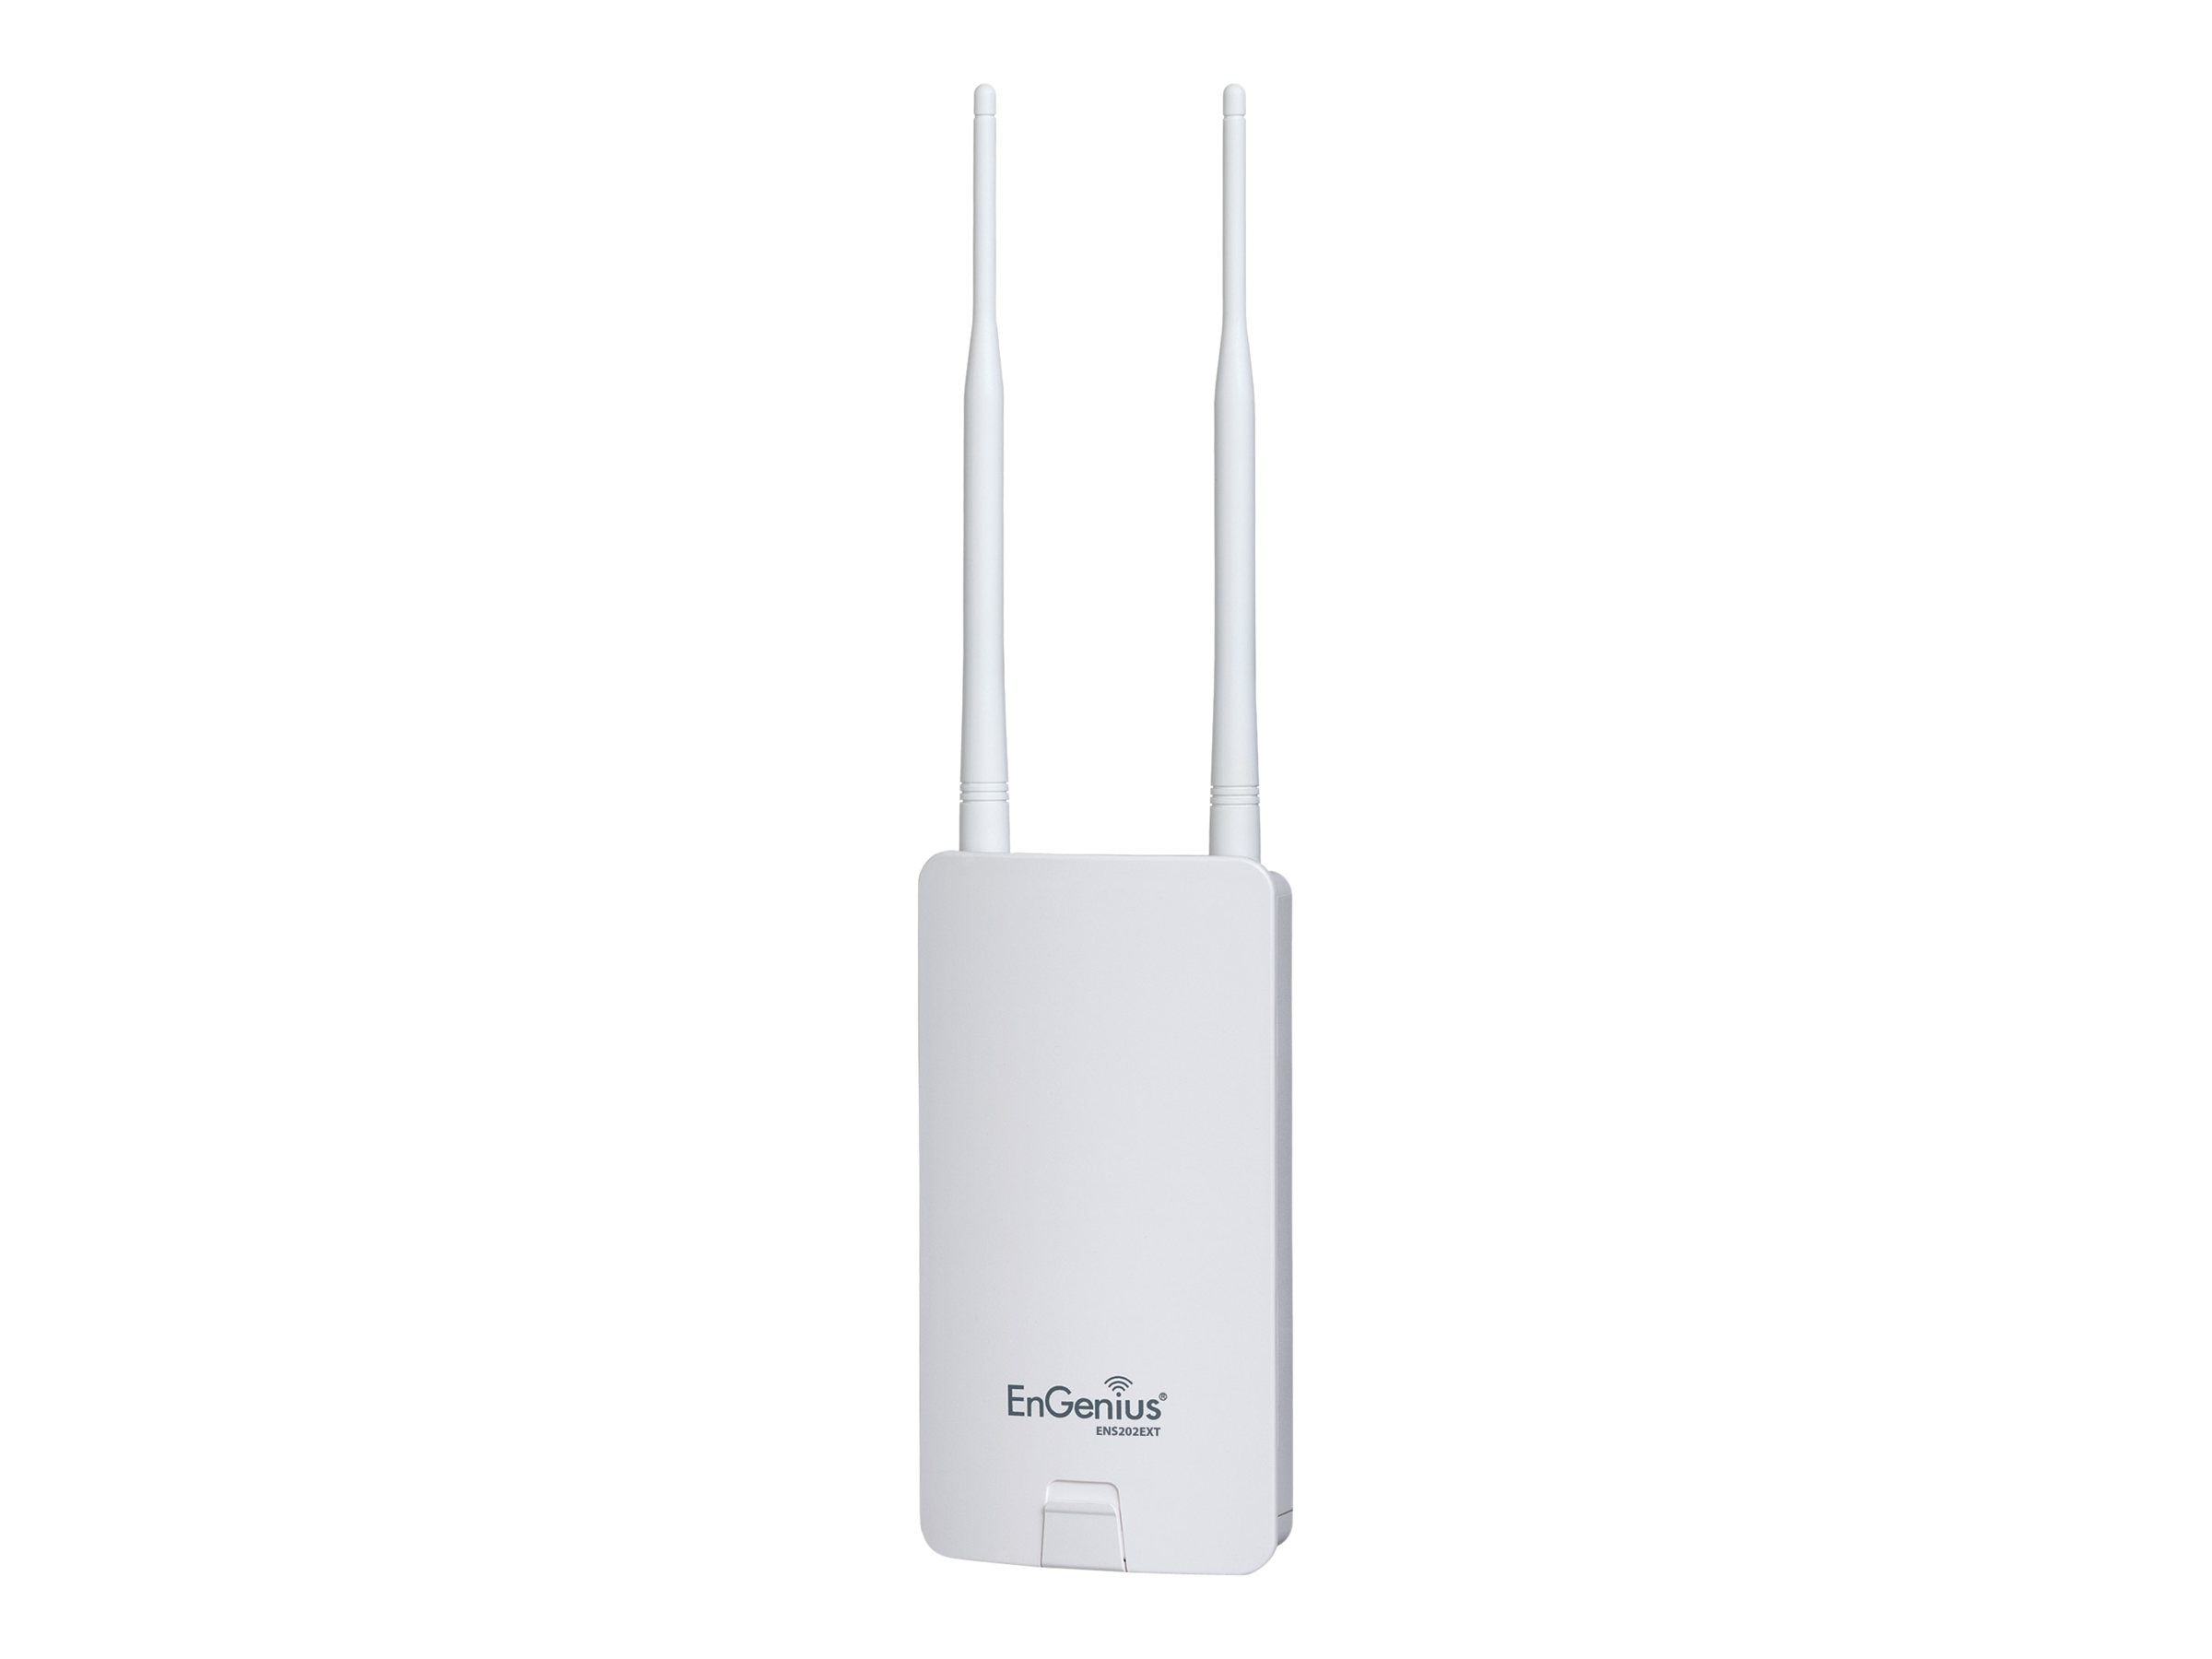 Engenius Technologies 2.4GHZ High-powered, long-range Wireless N300 Outdoor Access Point, ENS202EXT